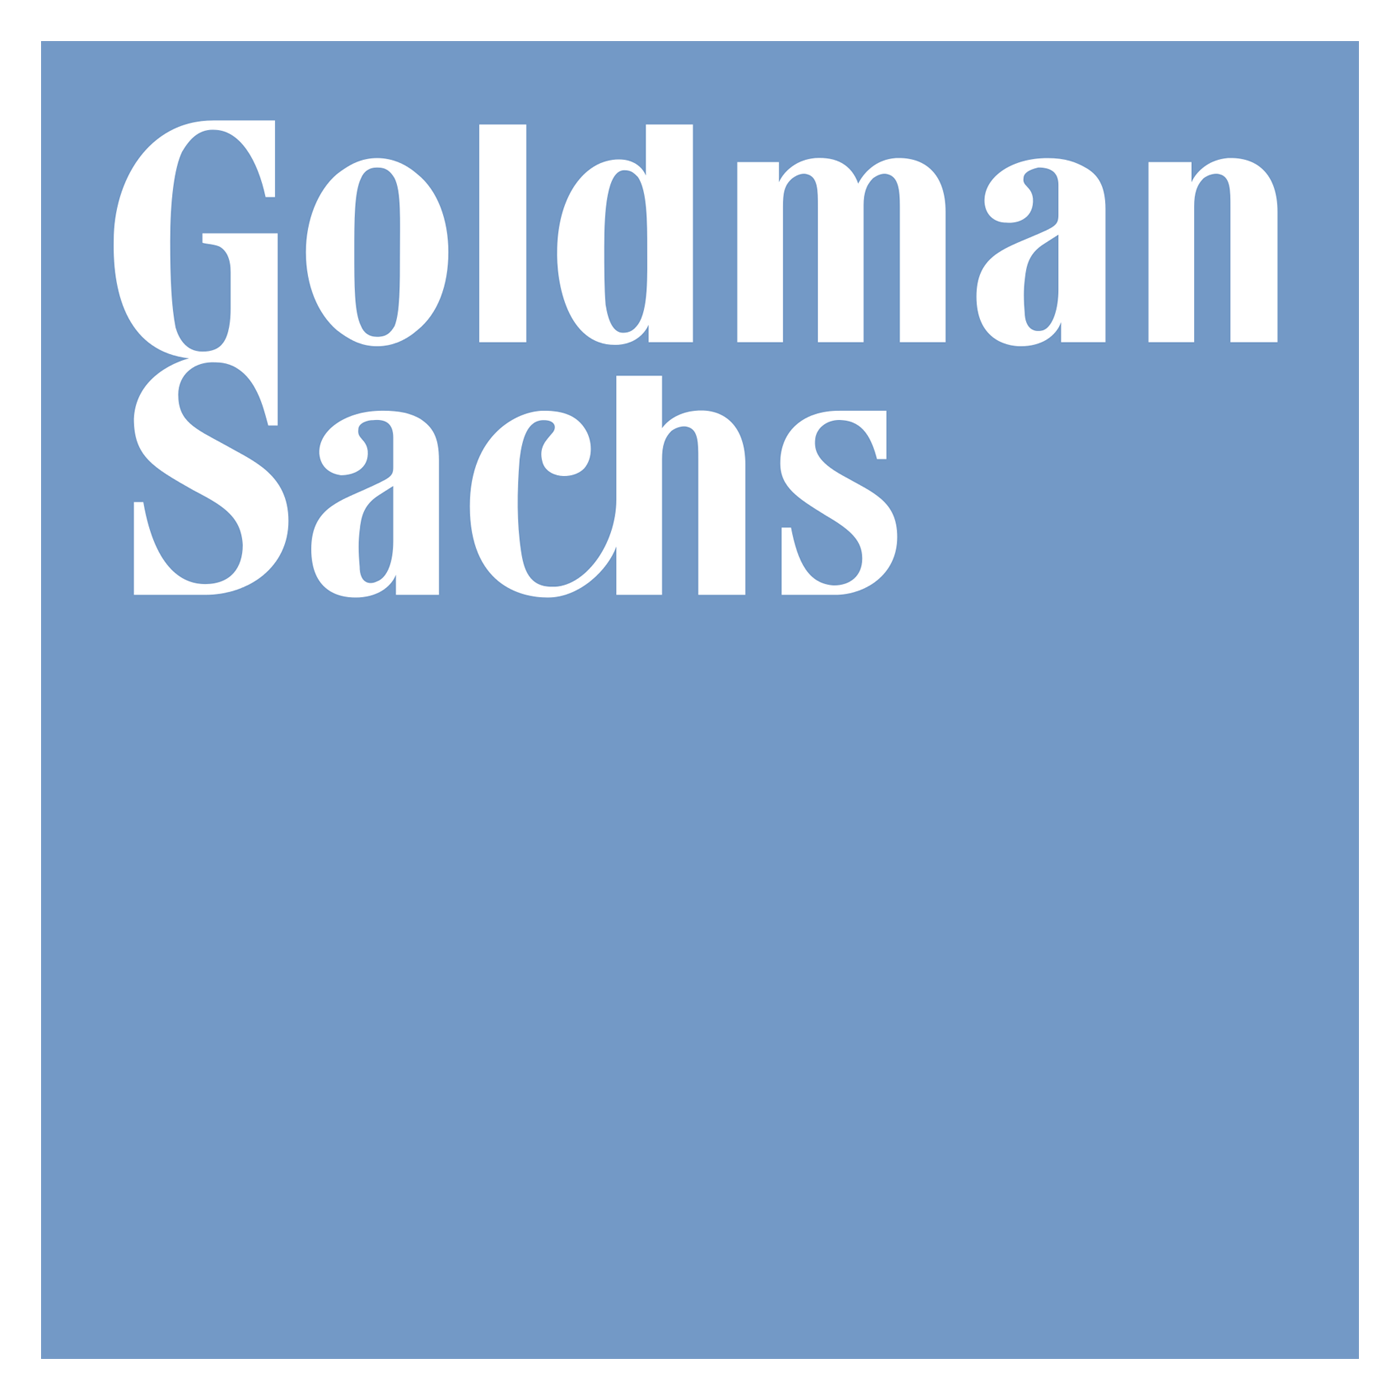 Goldman Sachs logo and symbol, meaning, history, PNG